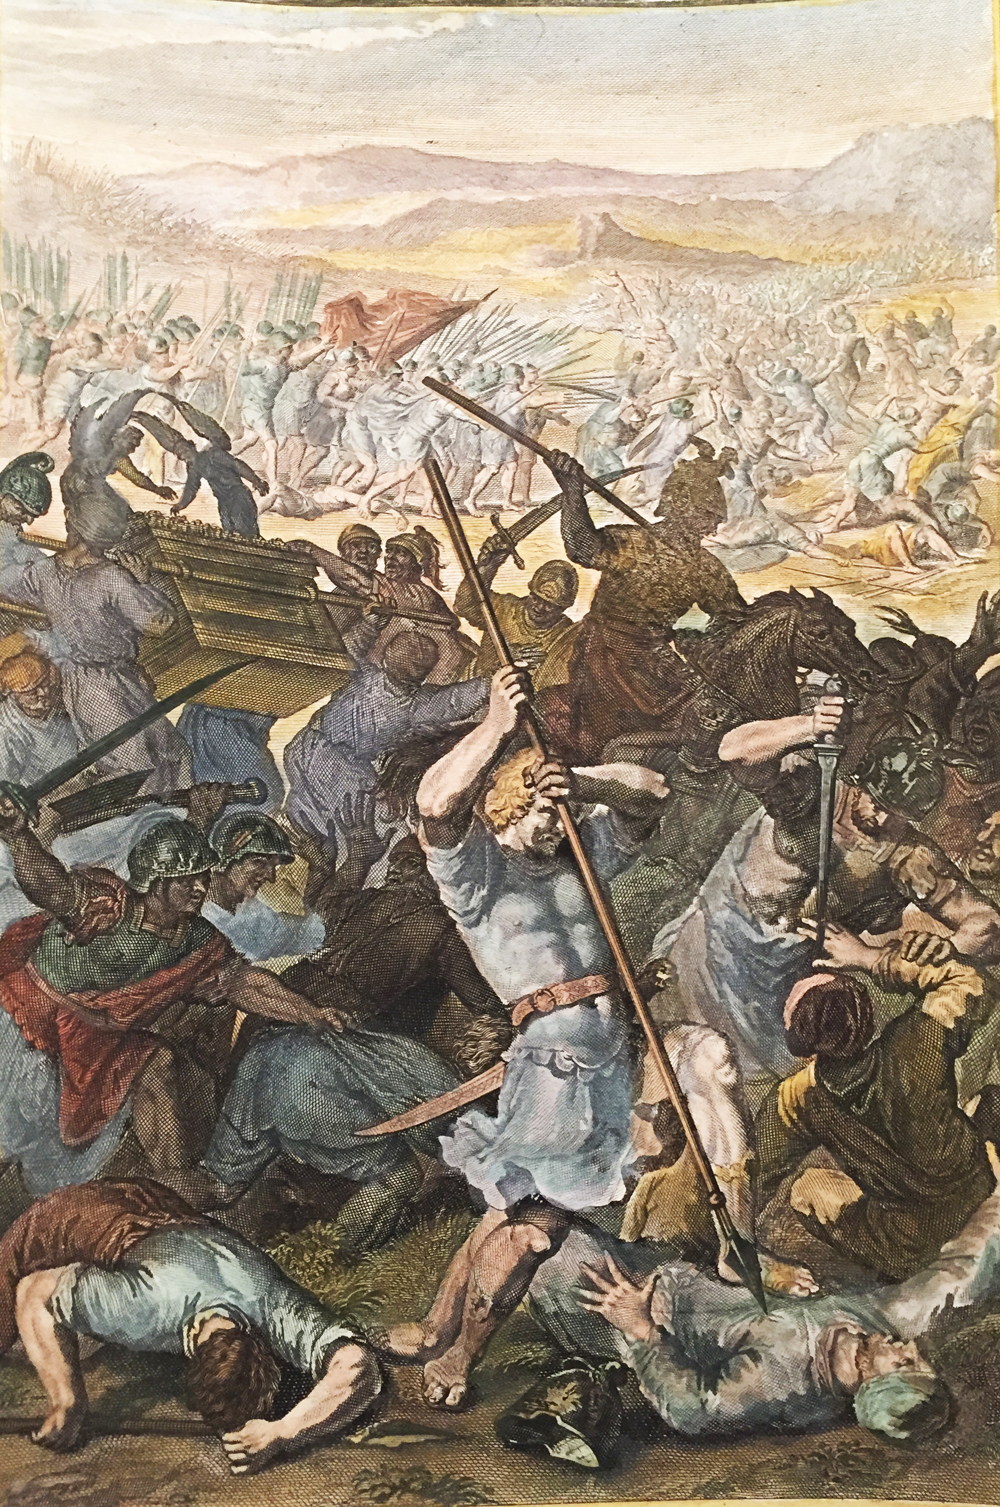 THE ISRAELITES DEFEATED BY THE PHILISTINES